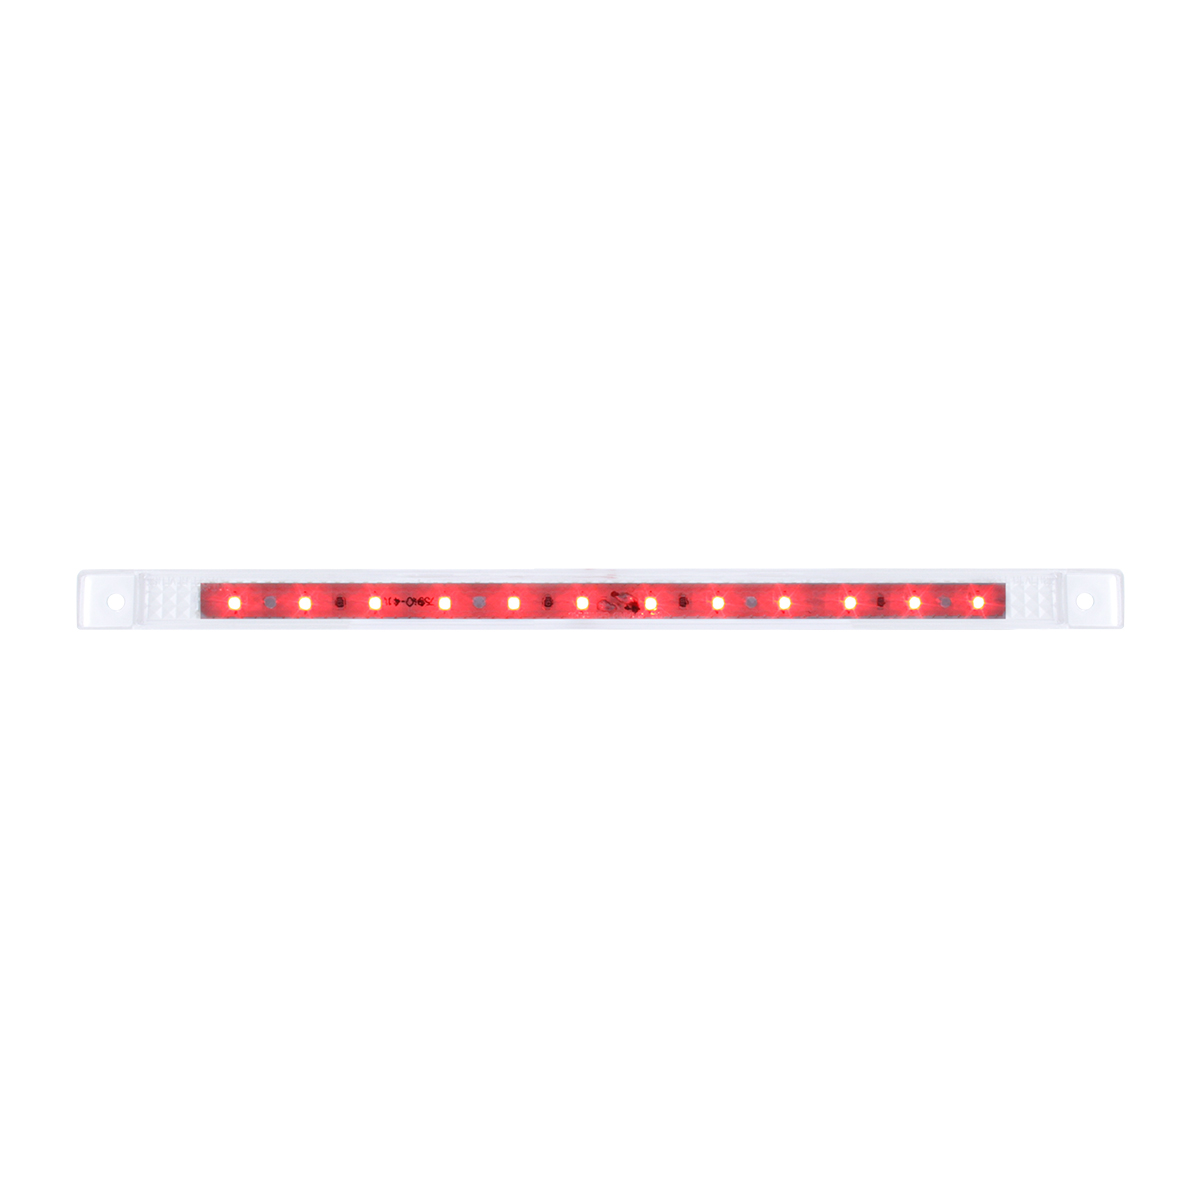 "75965 10-1/8"" Ultra Thin LED Marker Light"